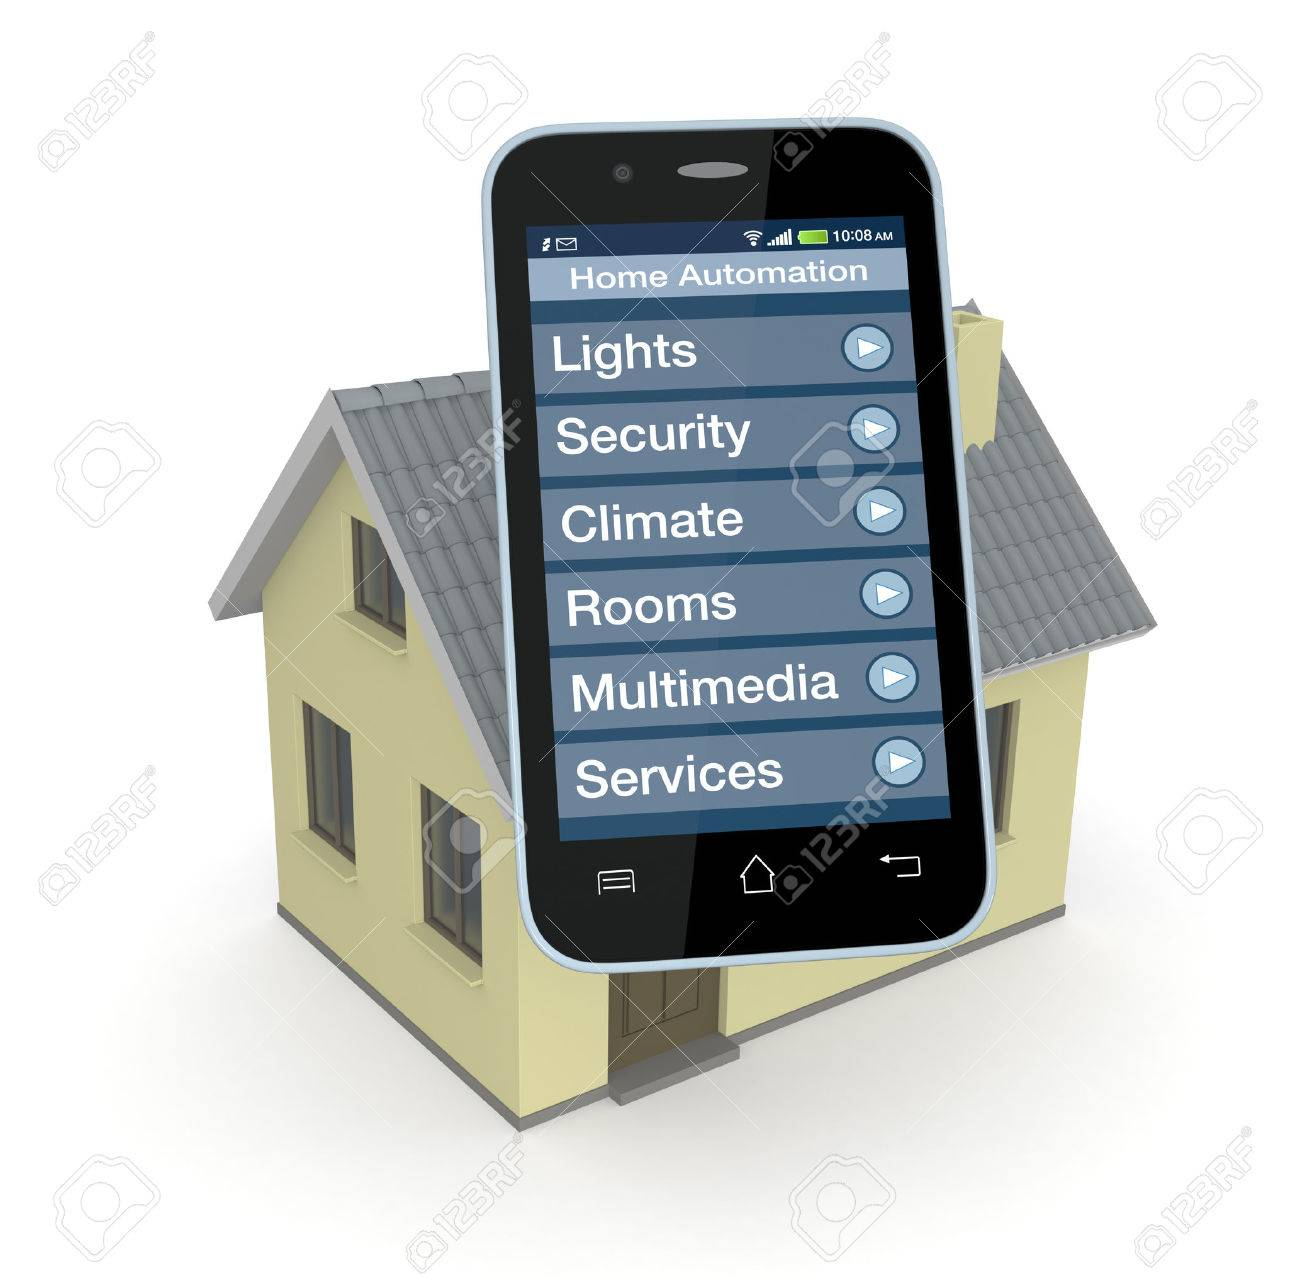 Smartphone Home Automation one house and smartphone with a software for home automation